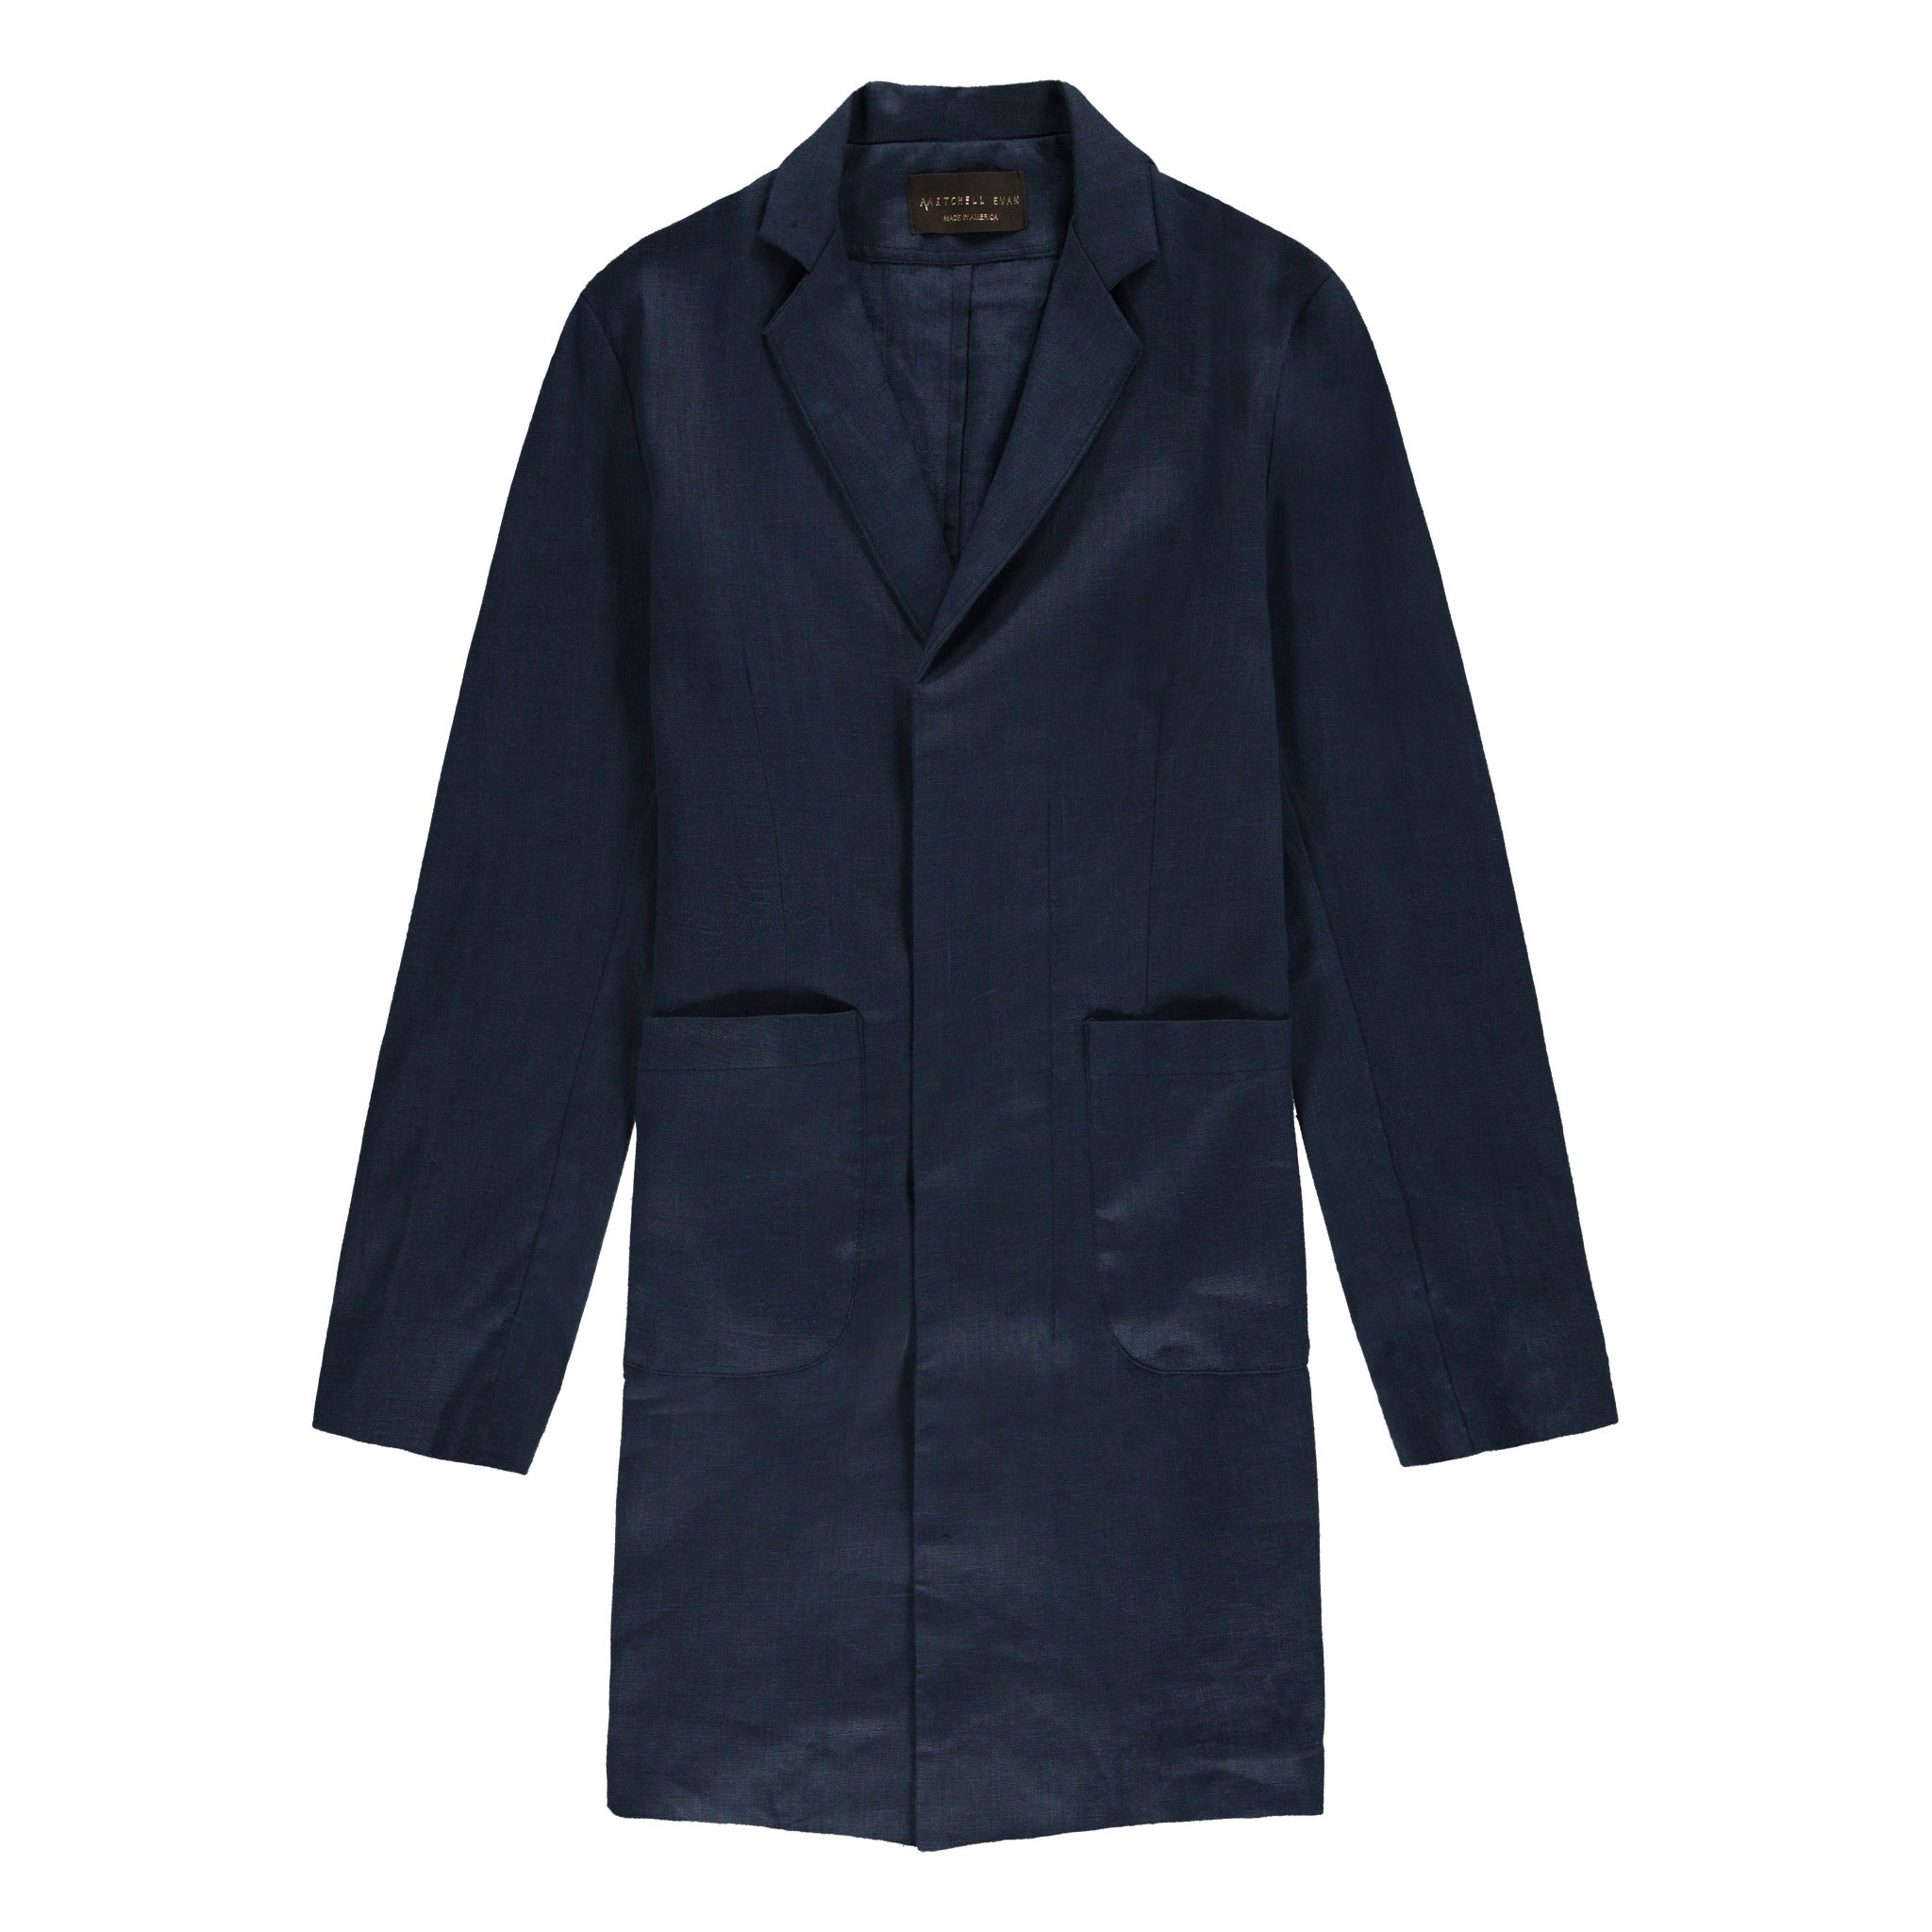 Linen Cusack Overcoat in Navy - Mitchell Evan